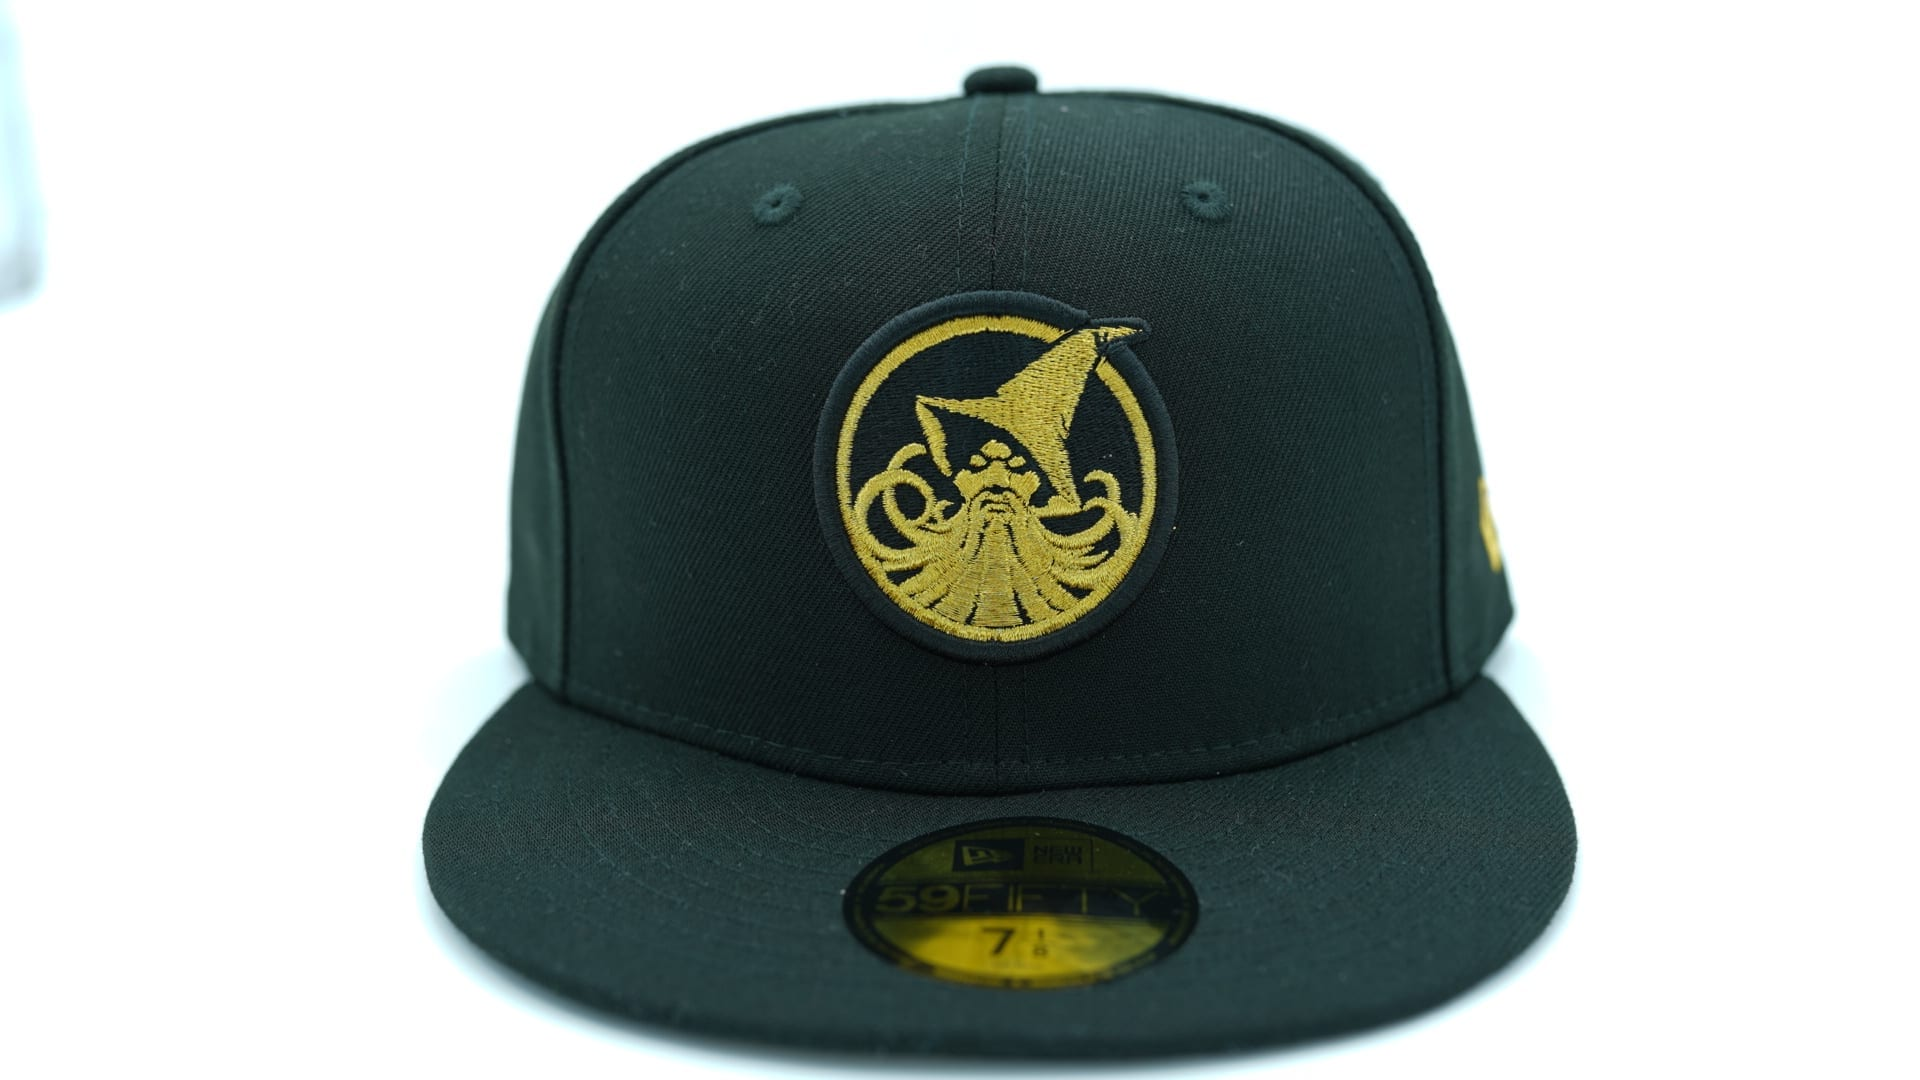 Home of Equality 5950 Fitted Cap by Milk x New Era Back